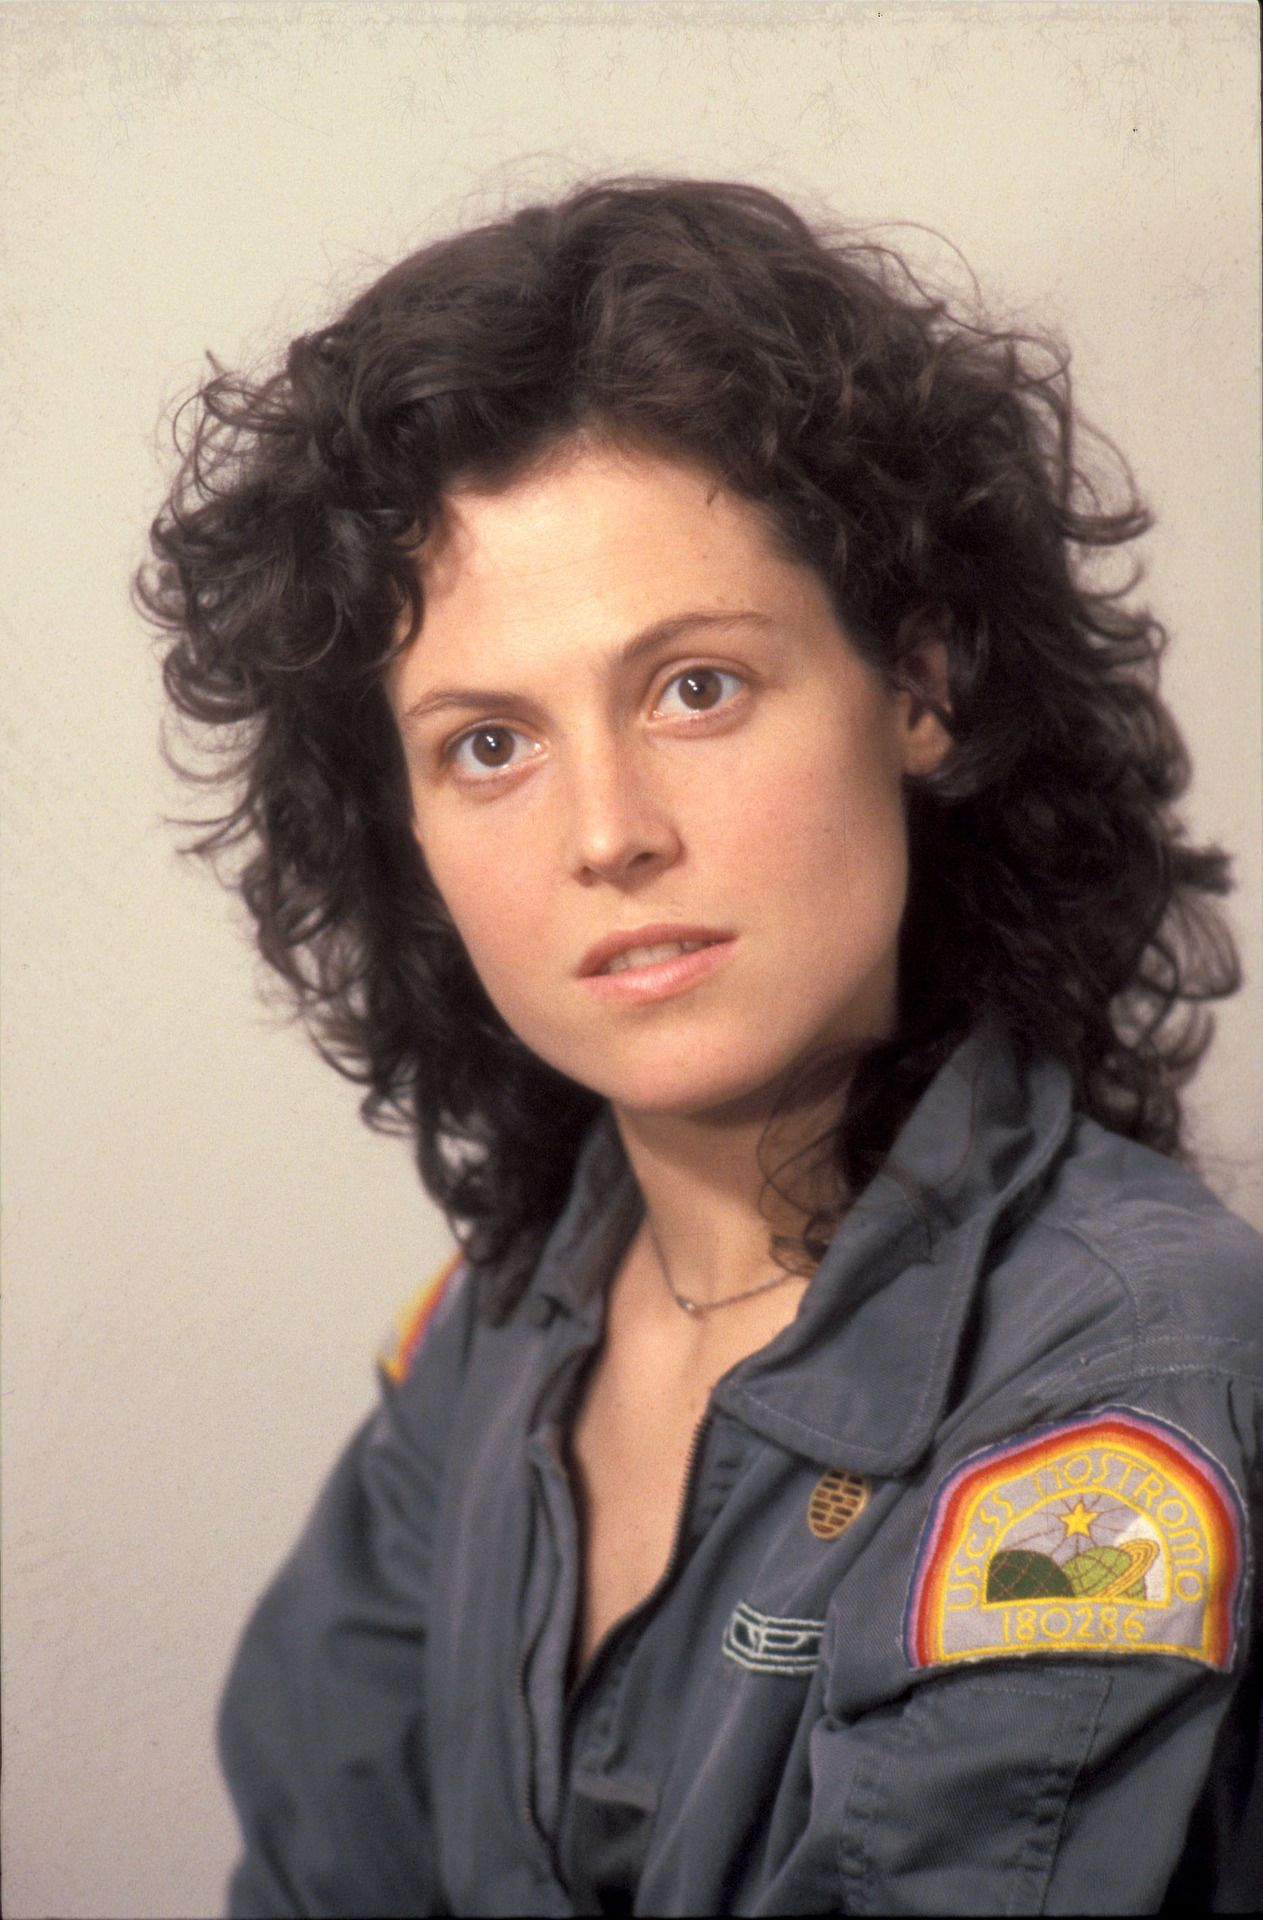 Young Sigourney Weaver nudes (45 photos), Topless, Leaked, Boobs, bra 2018